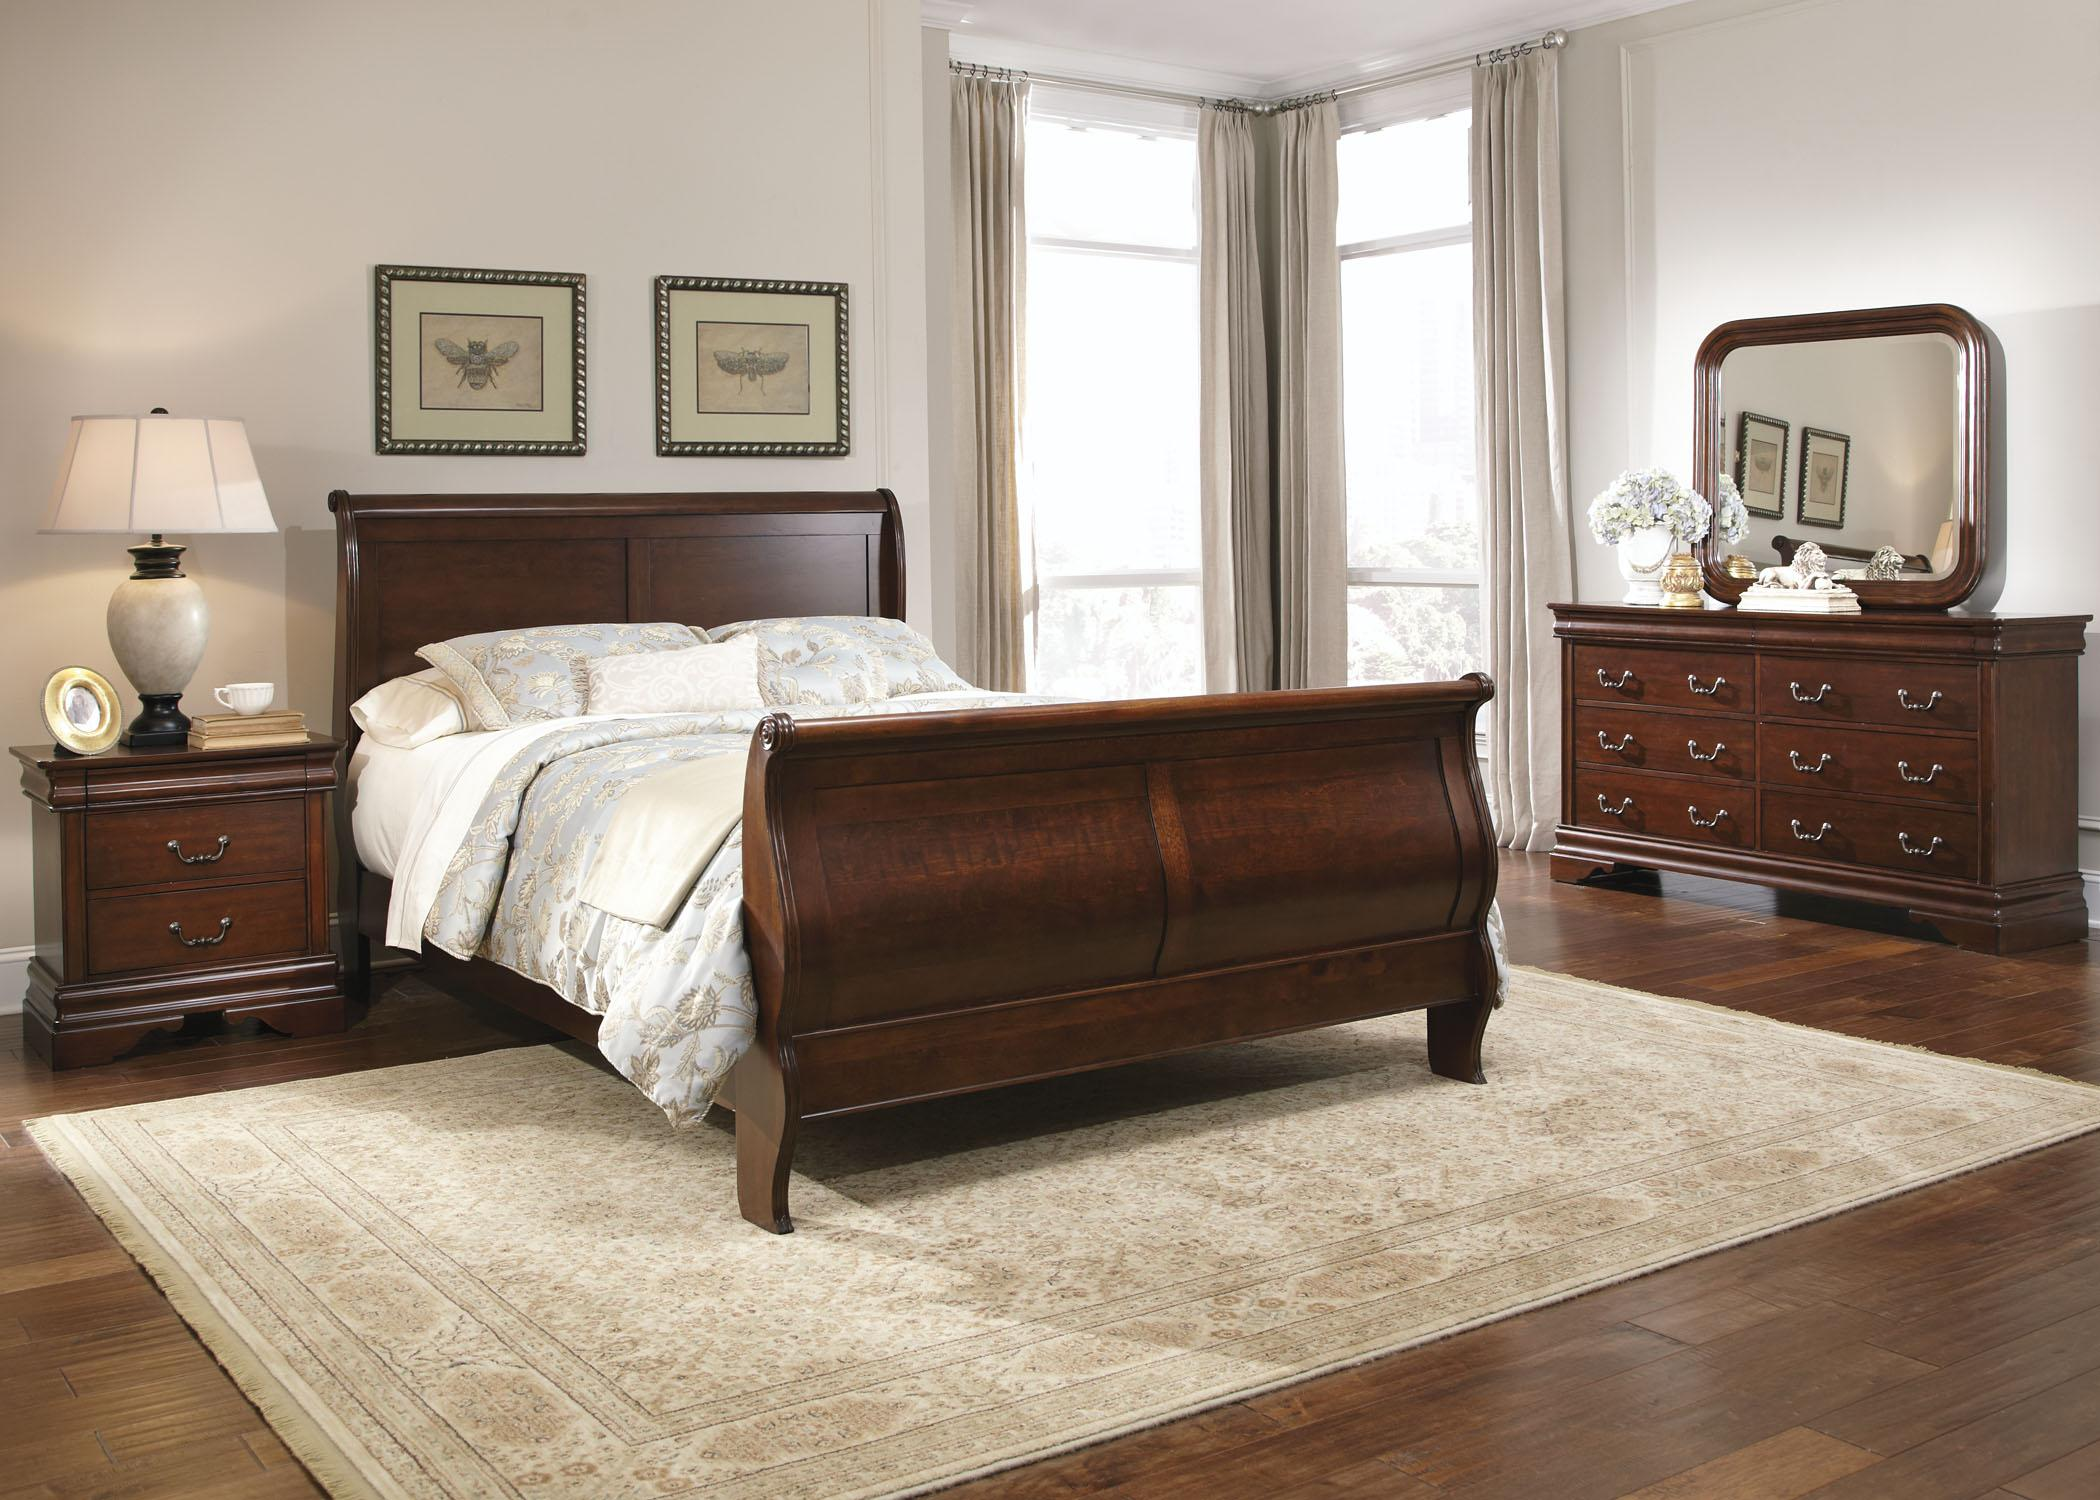 Liberty Furniture Carriage Court Queen Sleigh Bed, Dresser & Mirror - Item Number: 709-BR-GP30